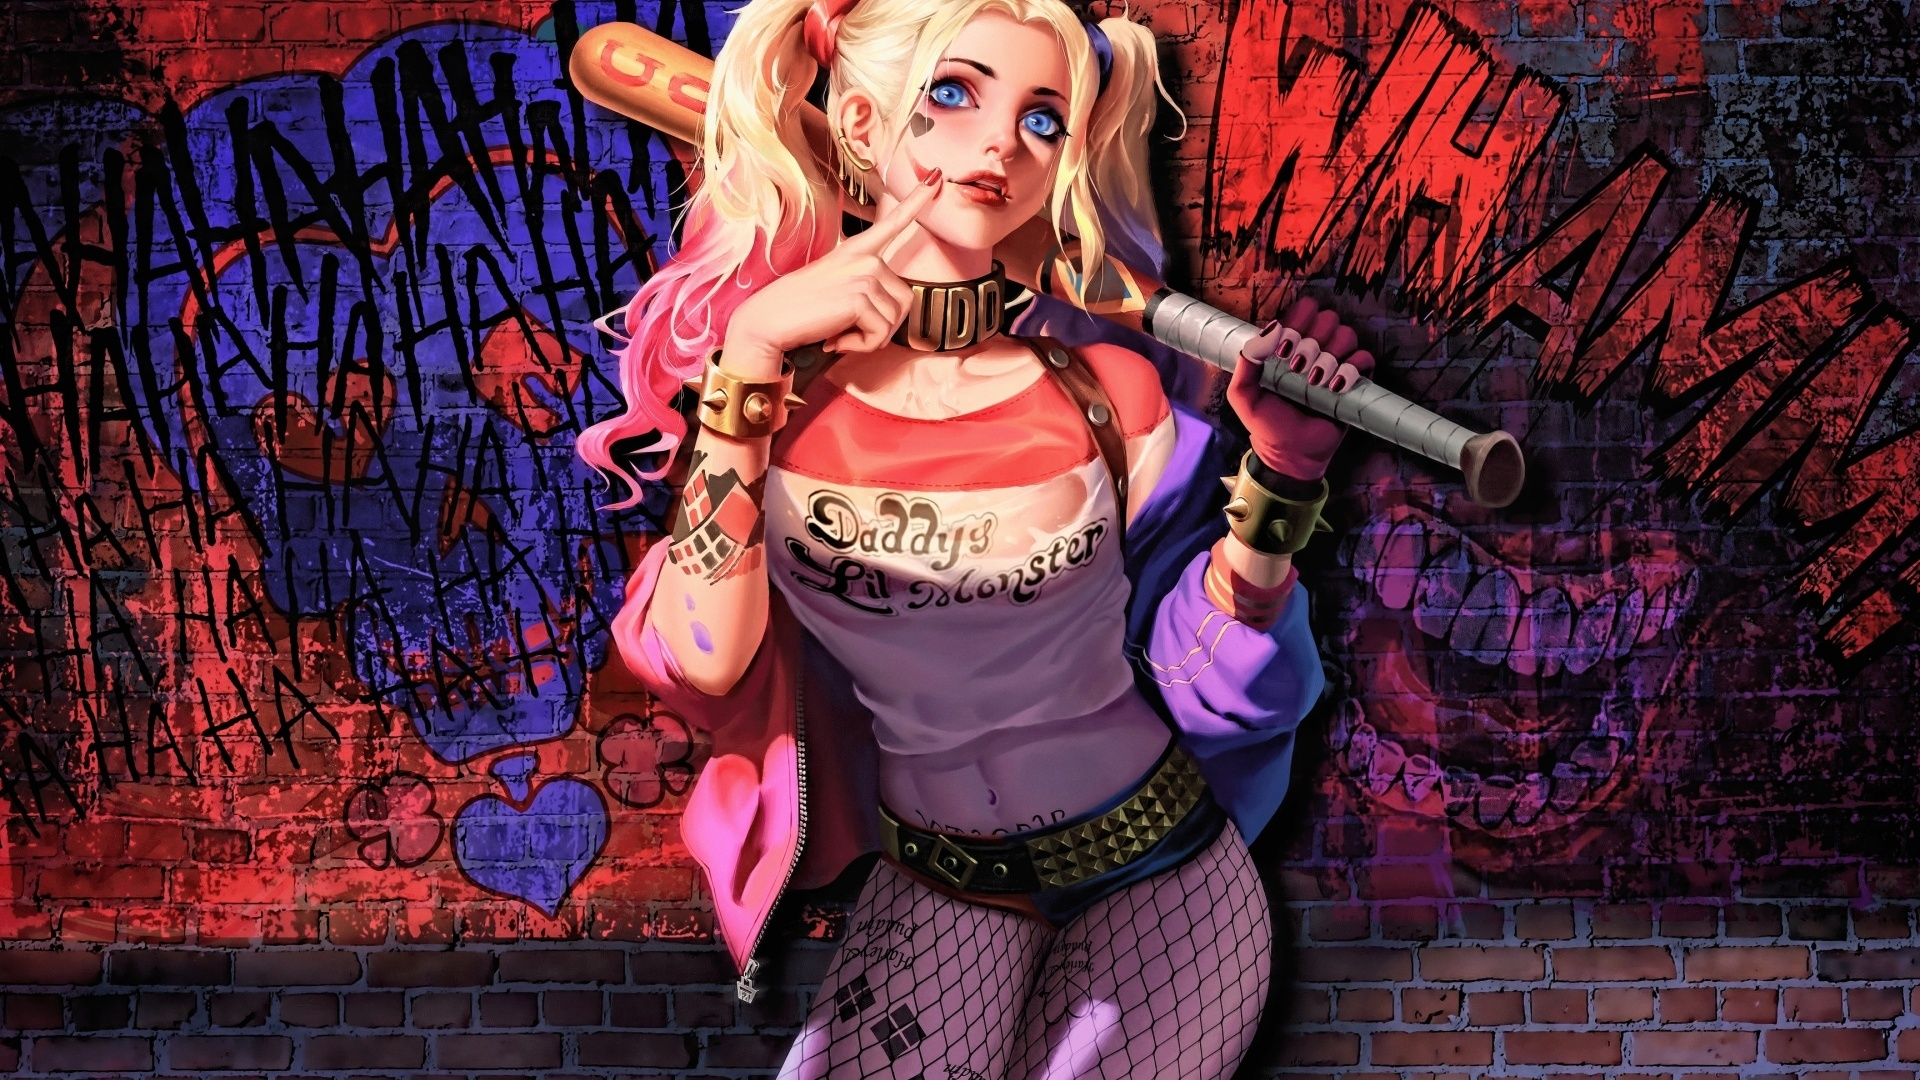 Harley Quinn background picture